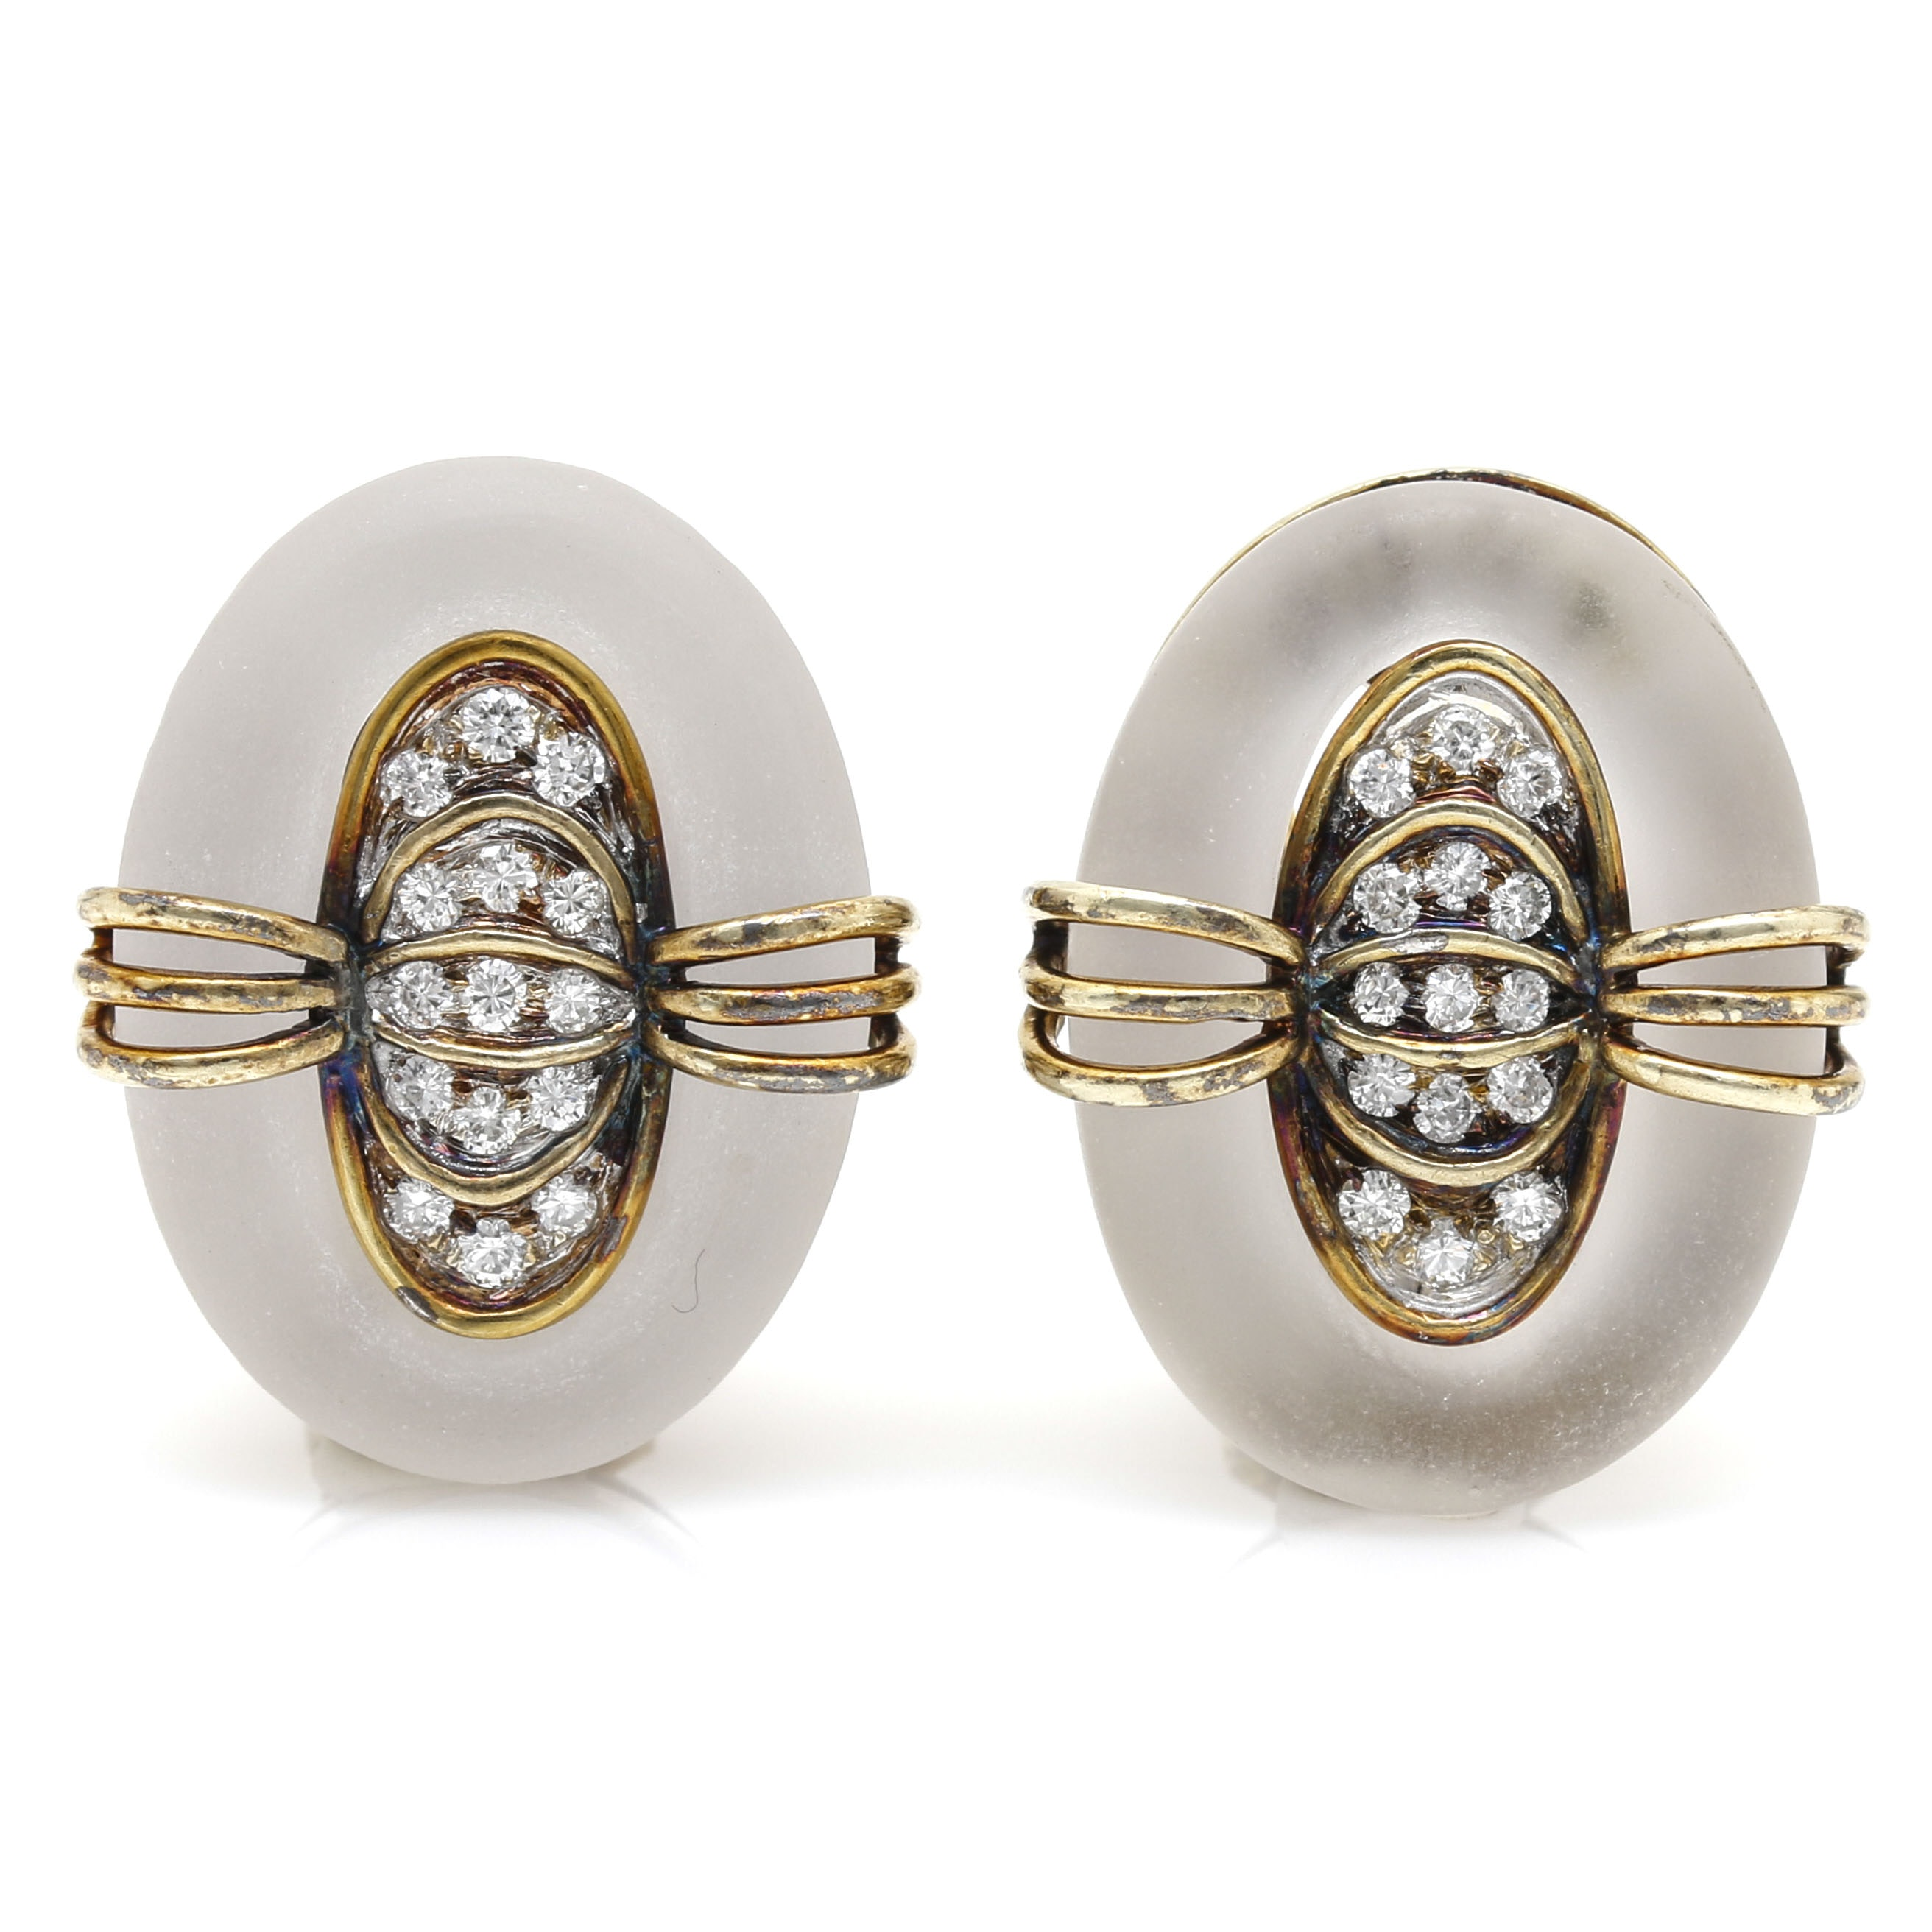 10K Yellow Gold Frosted Quartz and Diamond Earrings